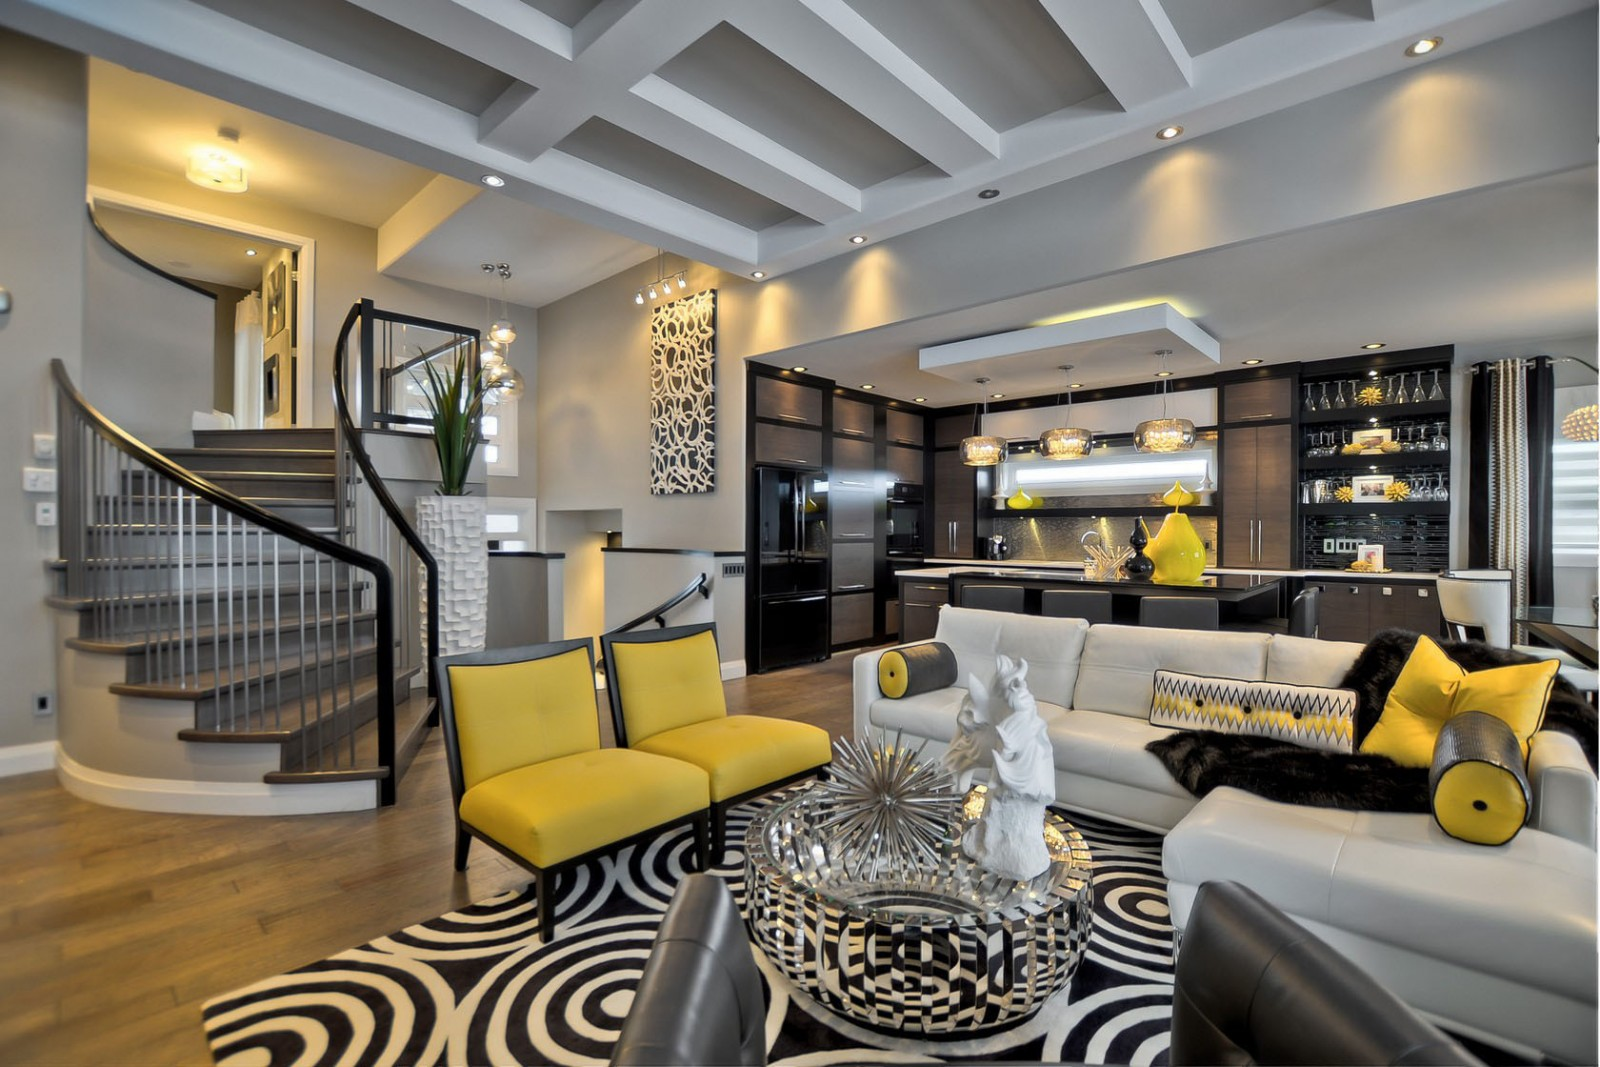 Home Interiors Decorating Ideas How To Add Black To Your Interiors For Sophisticated Style